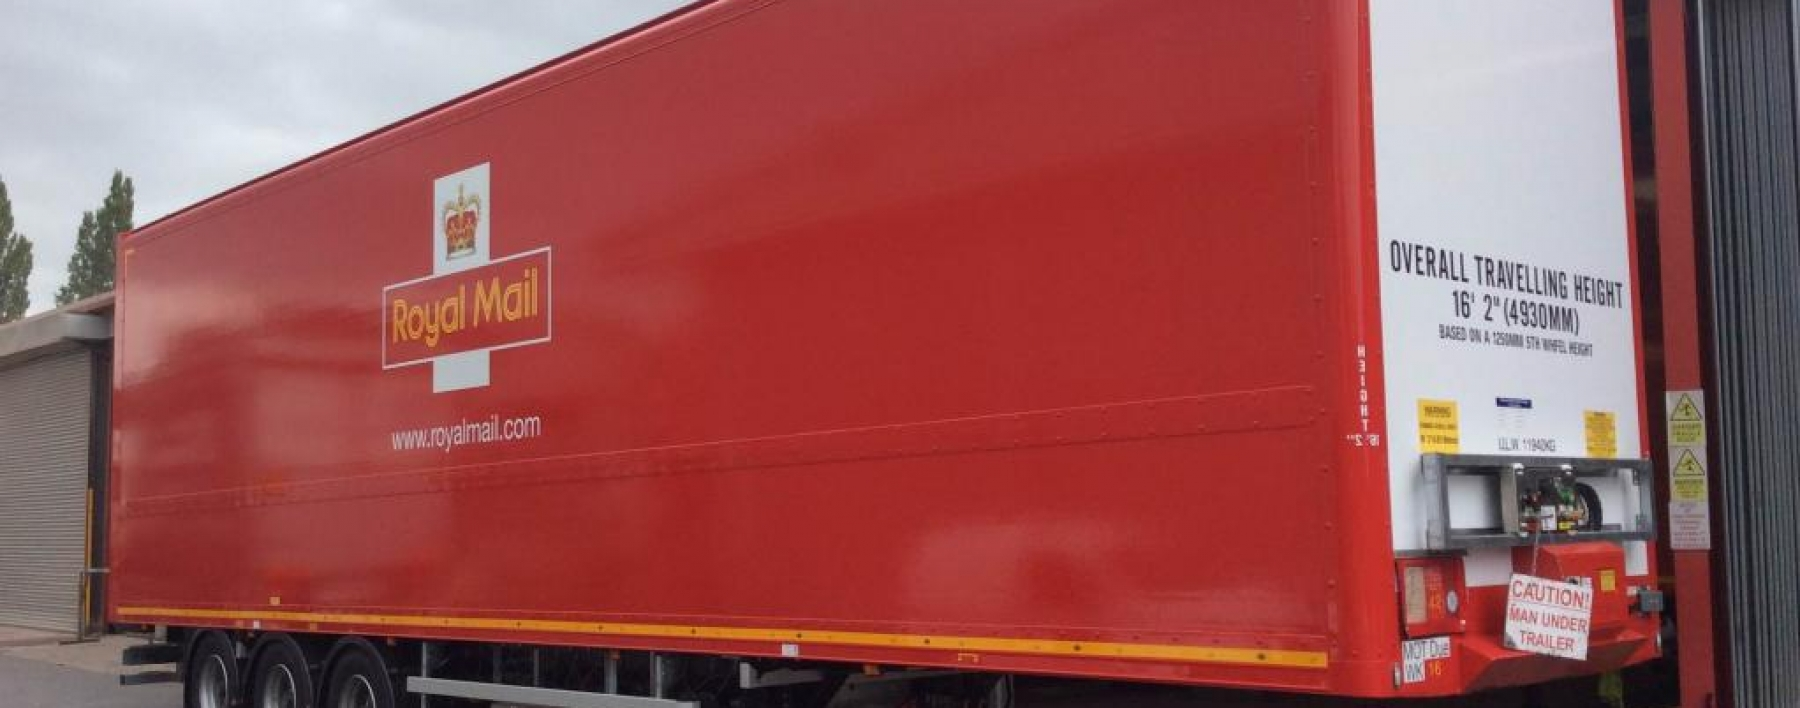 Royal mail vehicle livery